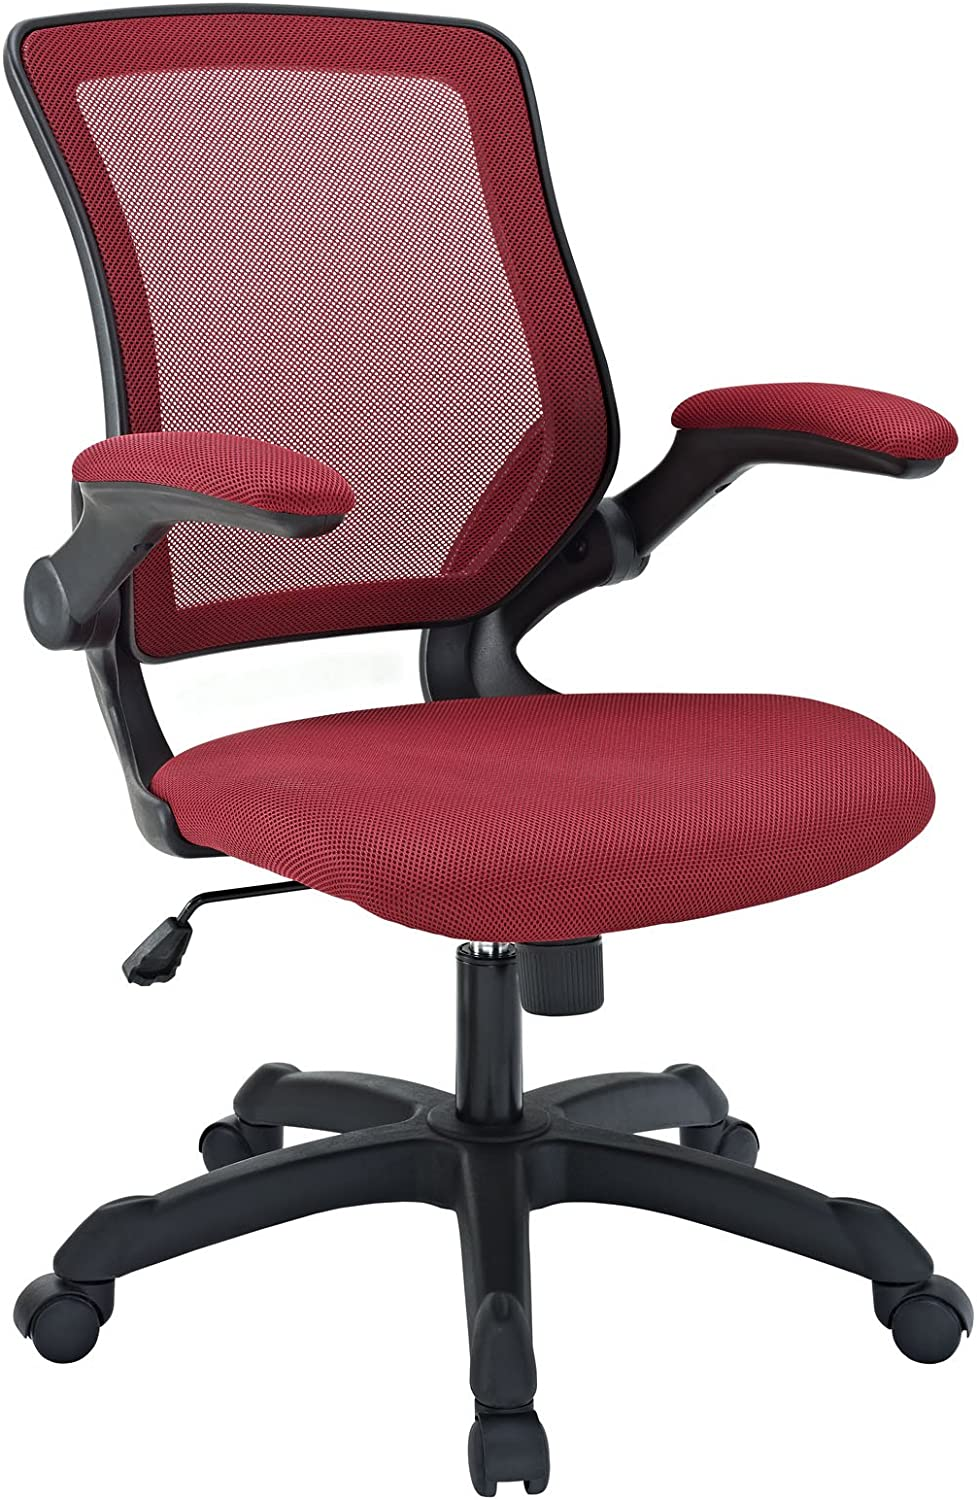 Modway Veer Office Chair with Mesh Back and Vinyl Seat With Flip-Up Arms in Red